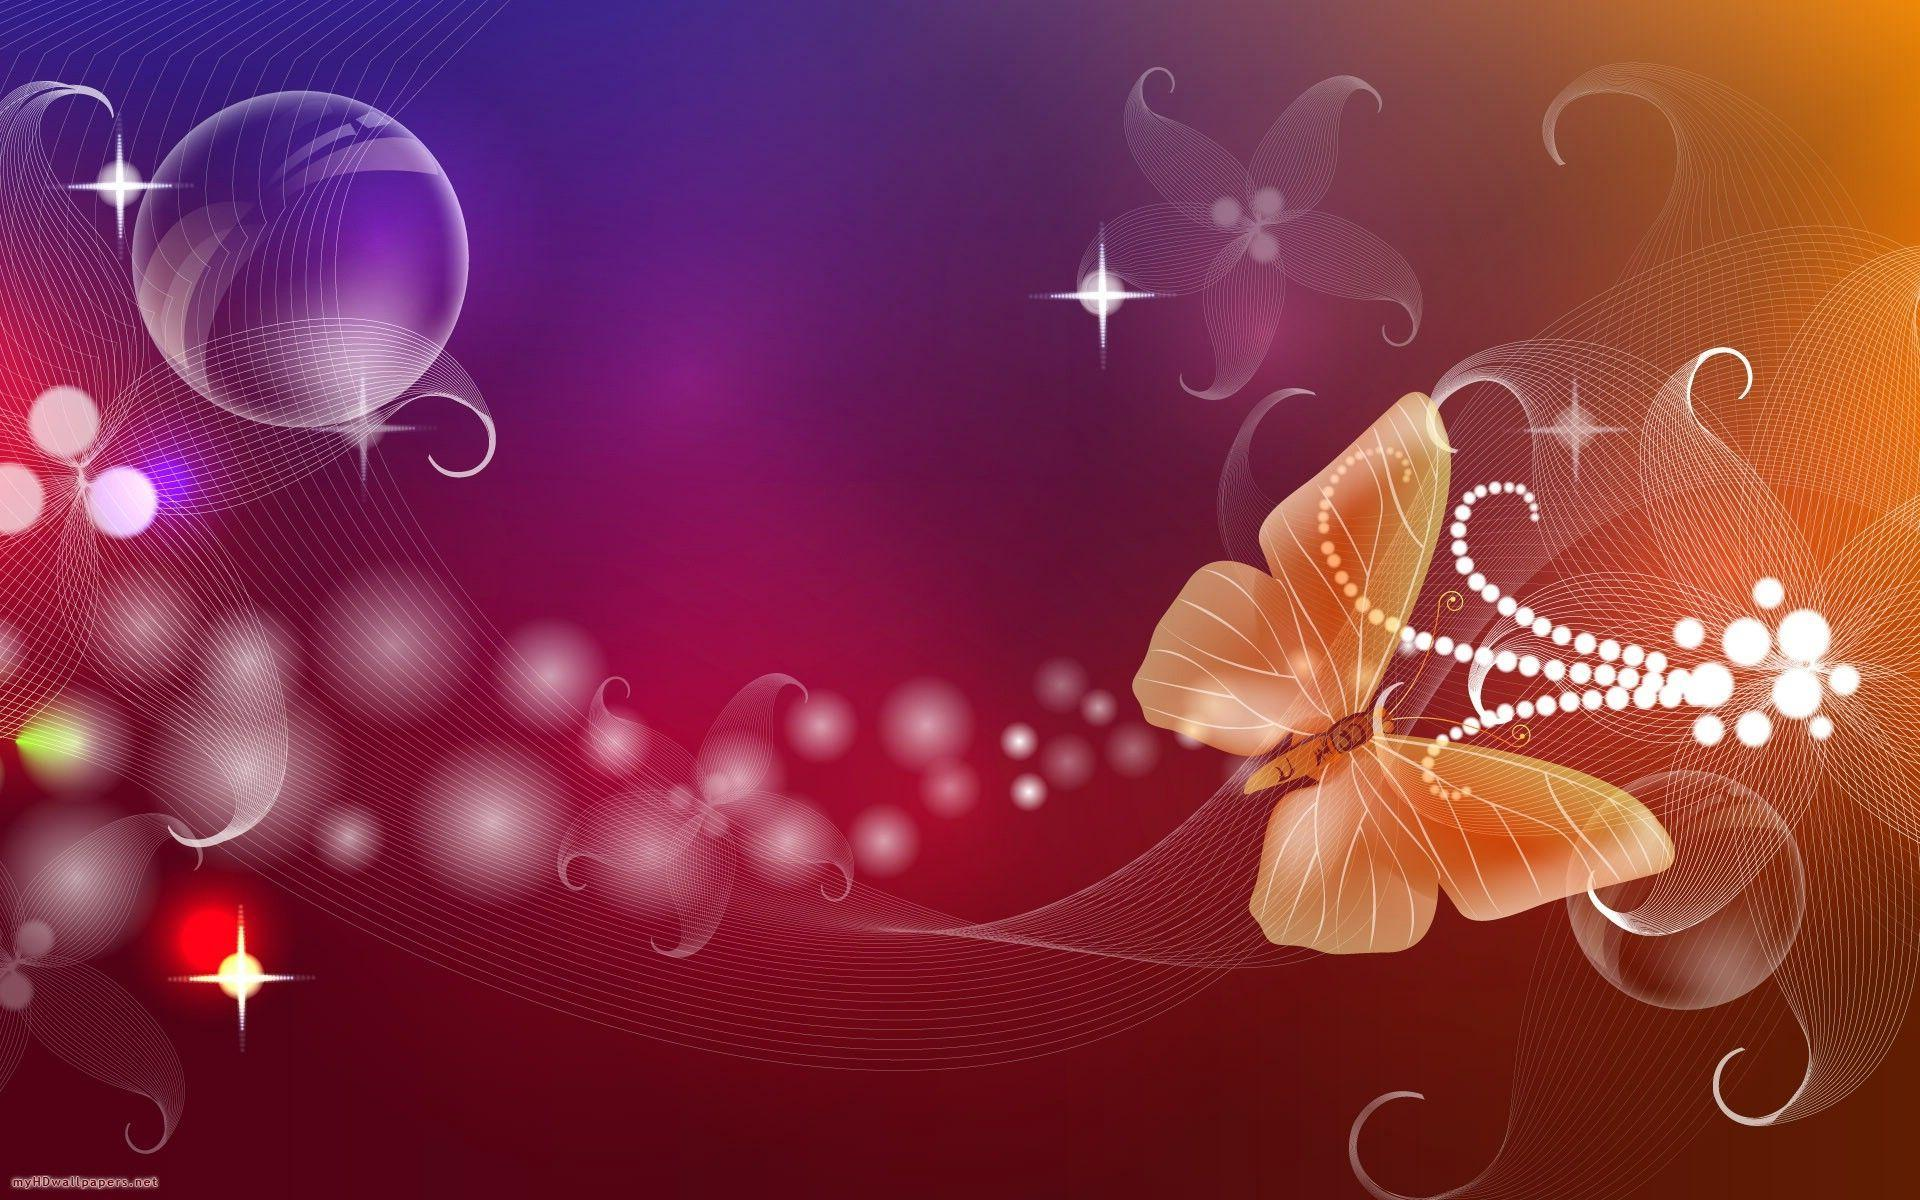 3D Butterfly Wallpapers - Wallpaper Cave